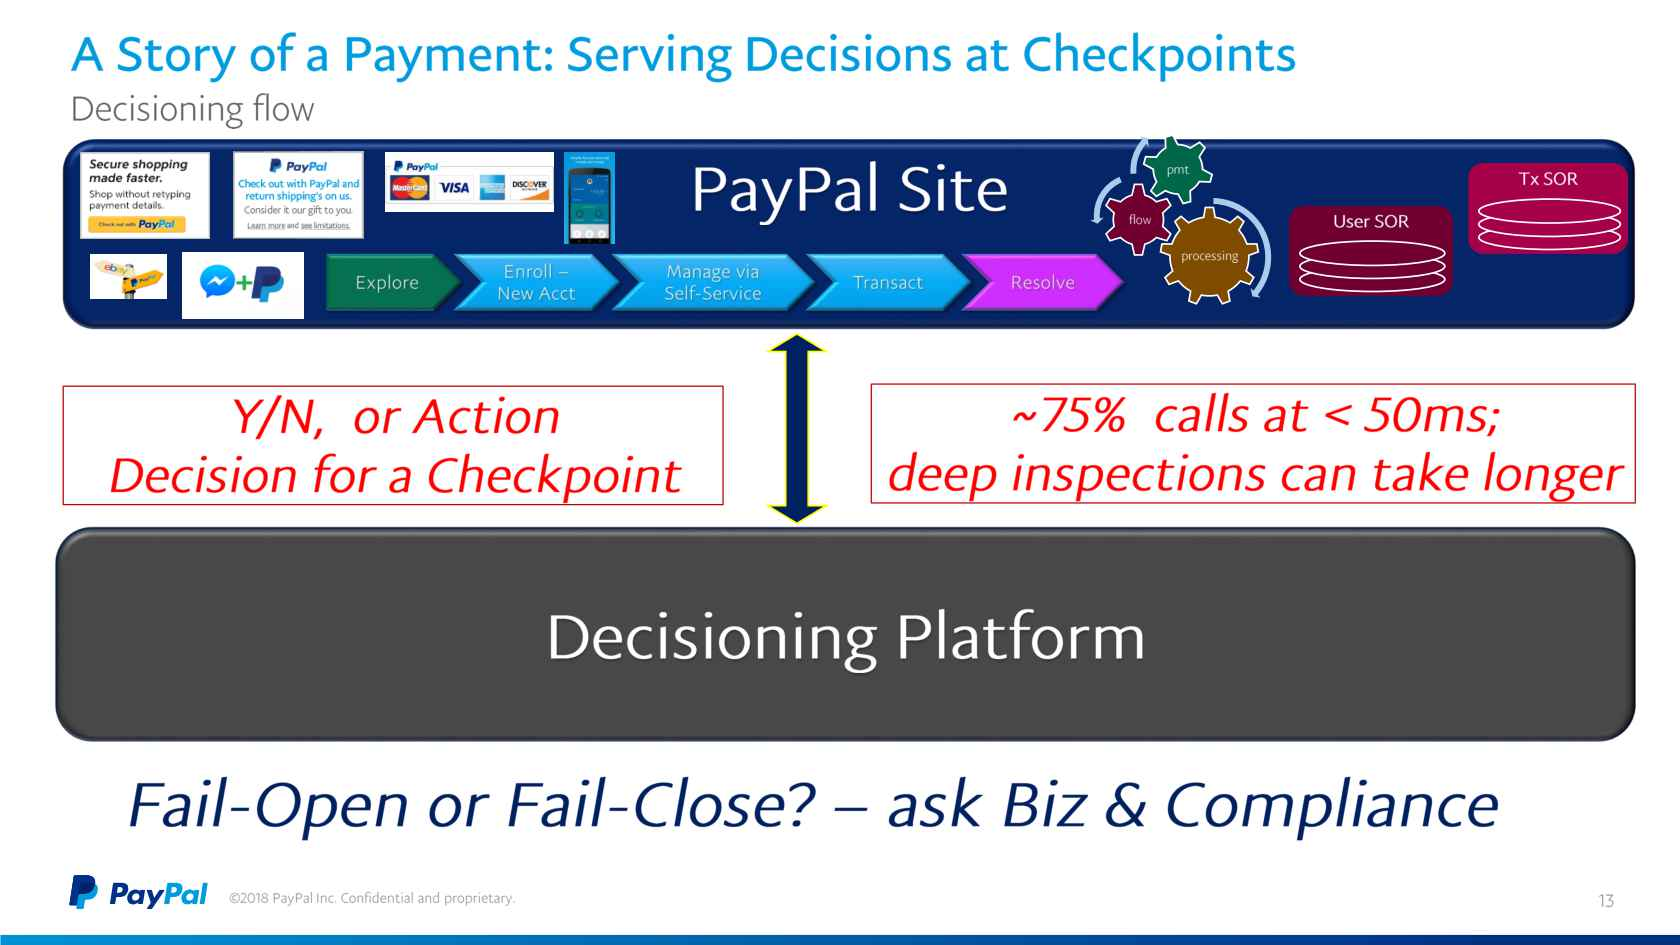 ML Data Pipelines for Real-Time Fraud Prevention @PayPal